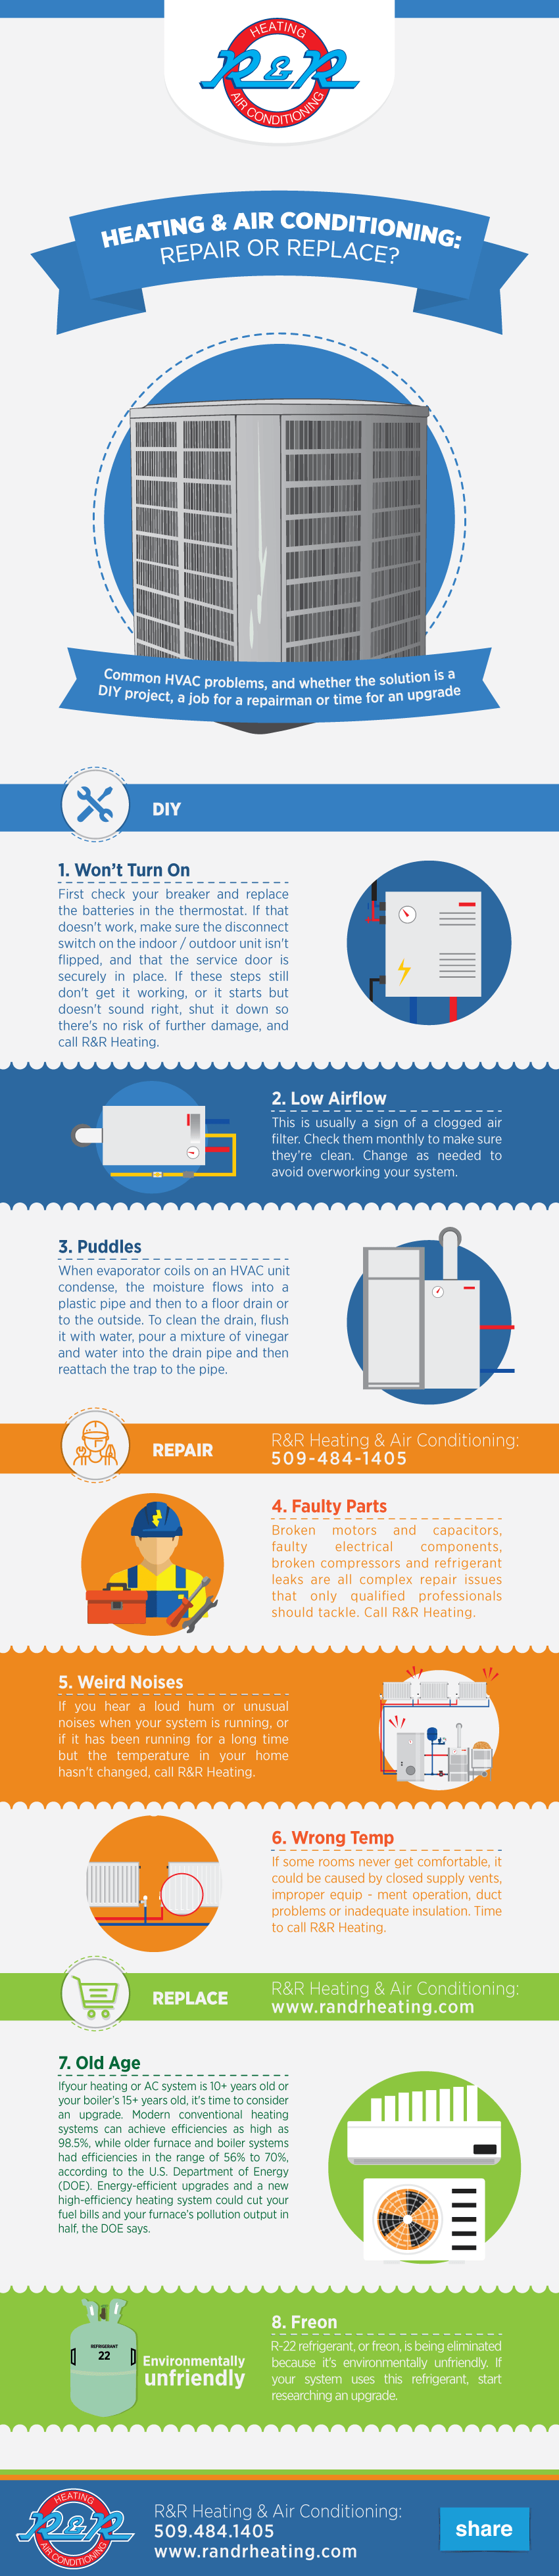 Heating Cooling Systems Replace Or Repair Infographic Hvac Hvactips Hometips Heati Heating Cooling System Heating And Air Conditioning Heating Repair